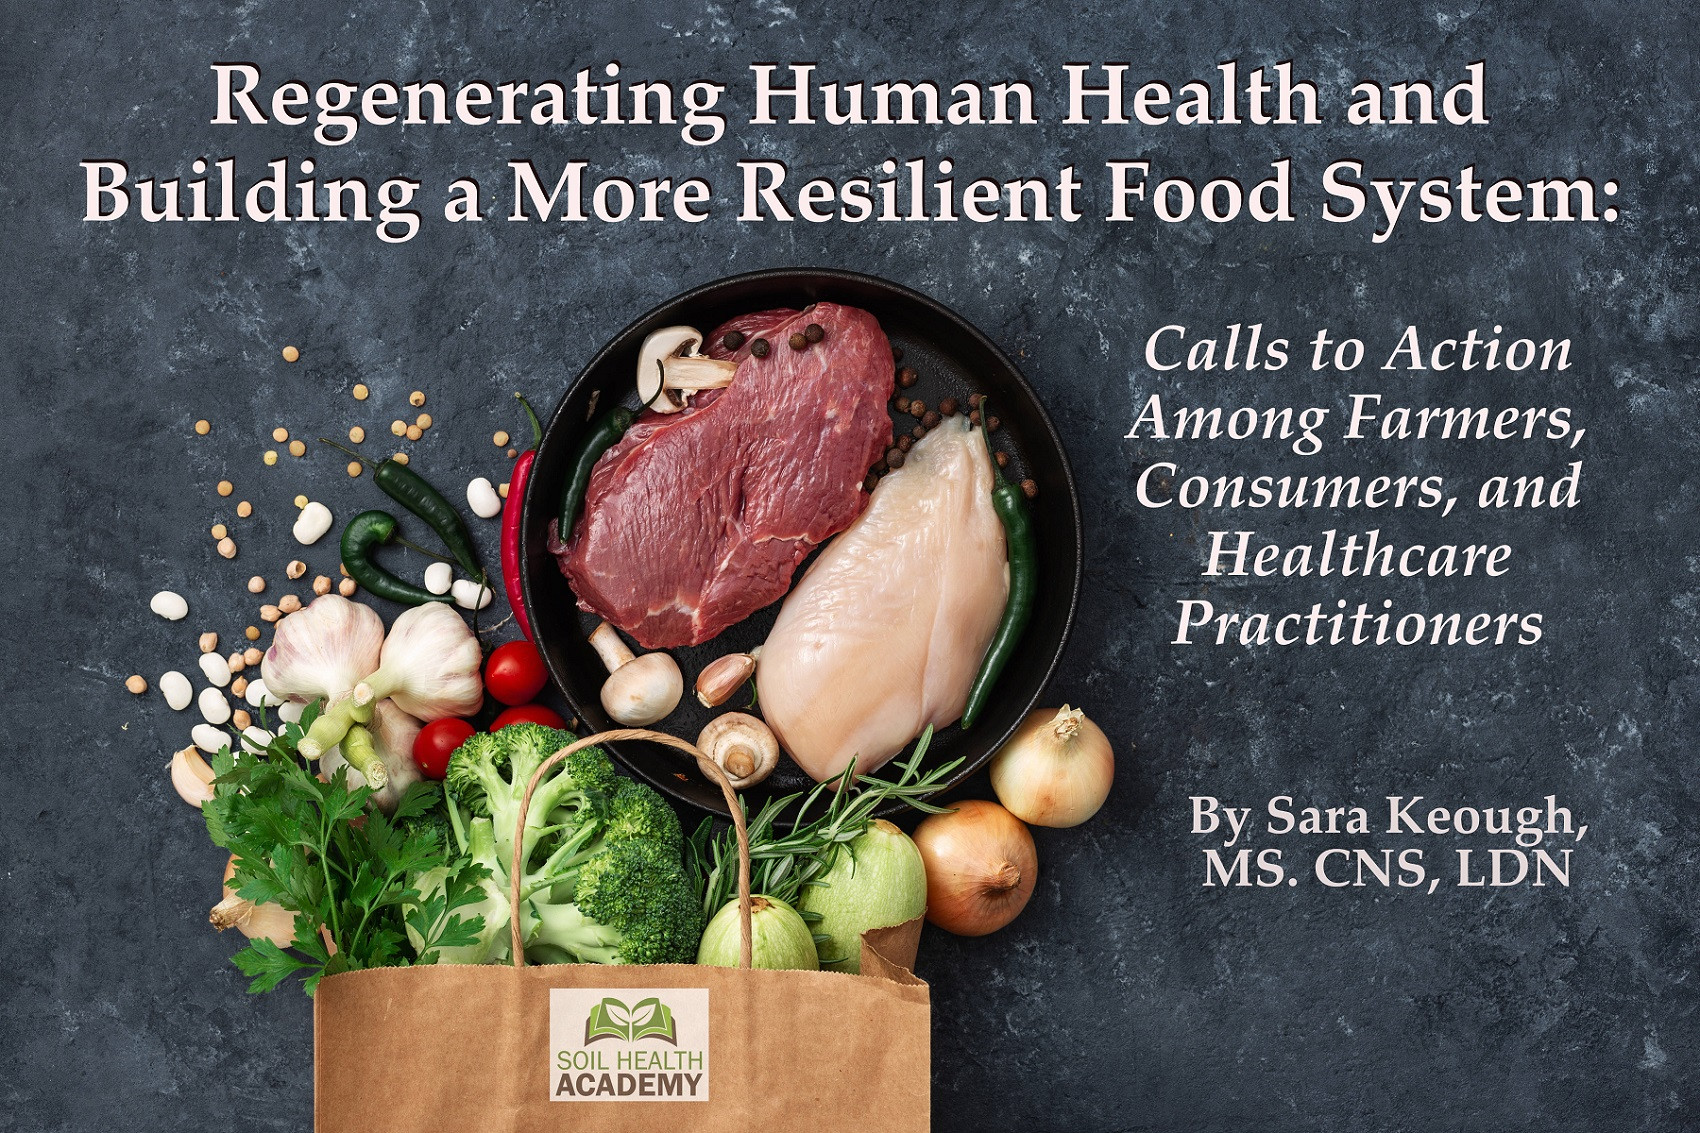 Regenerating Human Health & Building a More Resilient Food System: Calls to Action Among Farmers, Consumers, and Healthcare Practitioners